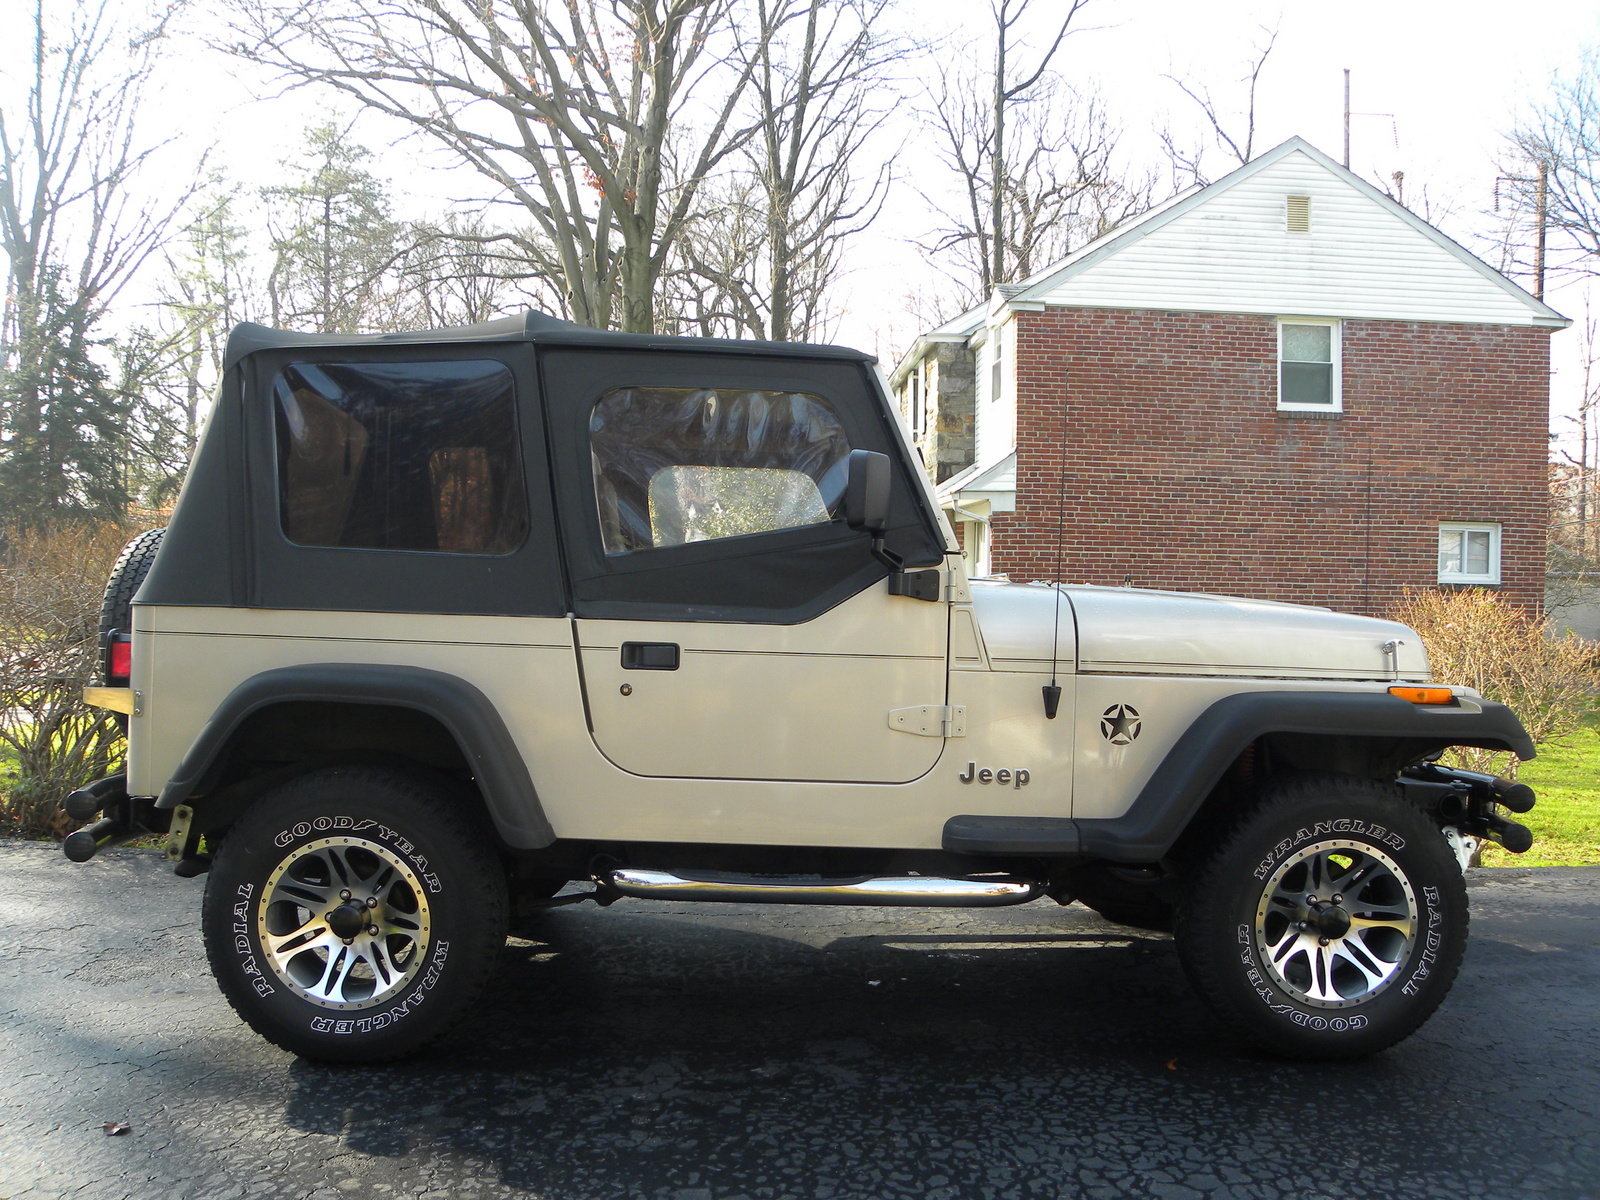 Jeep Wrangler S Pic on 1995 Toyota 4runner Fuel Filter Location